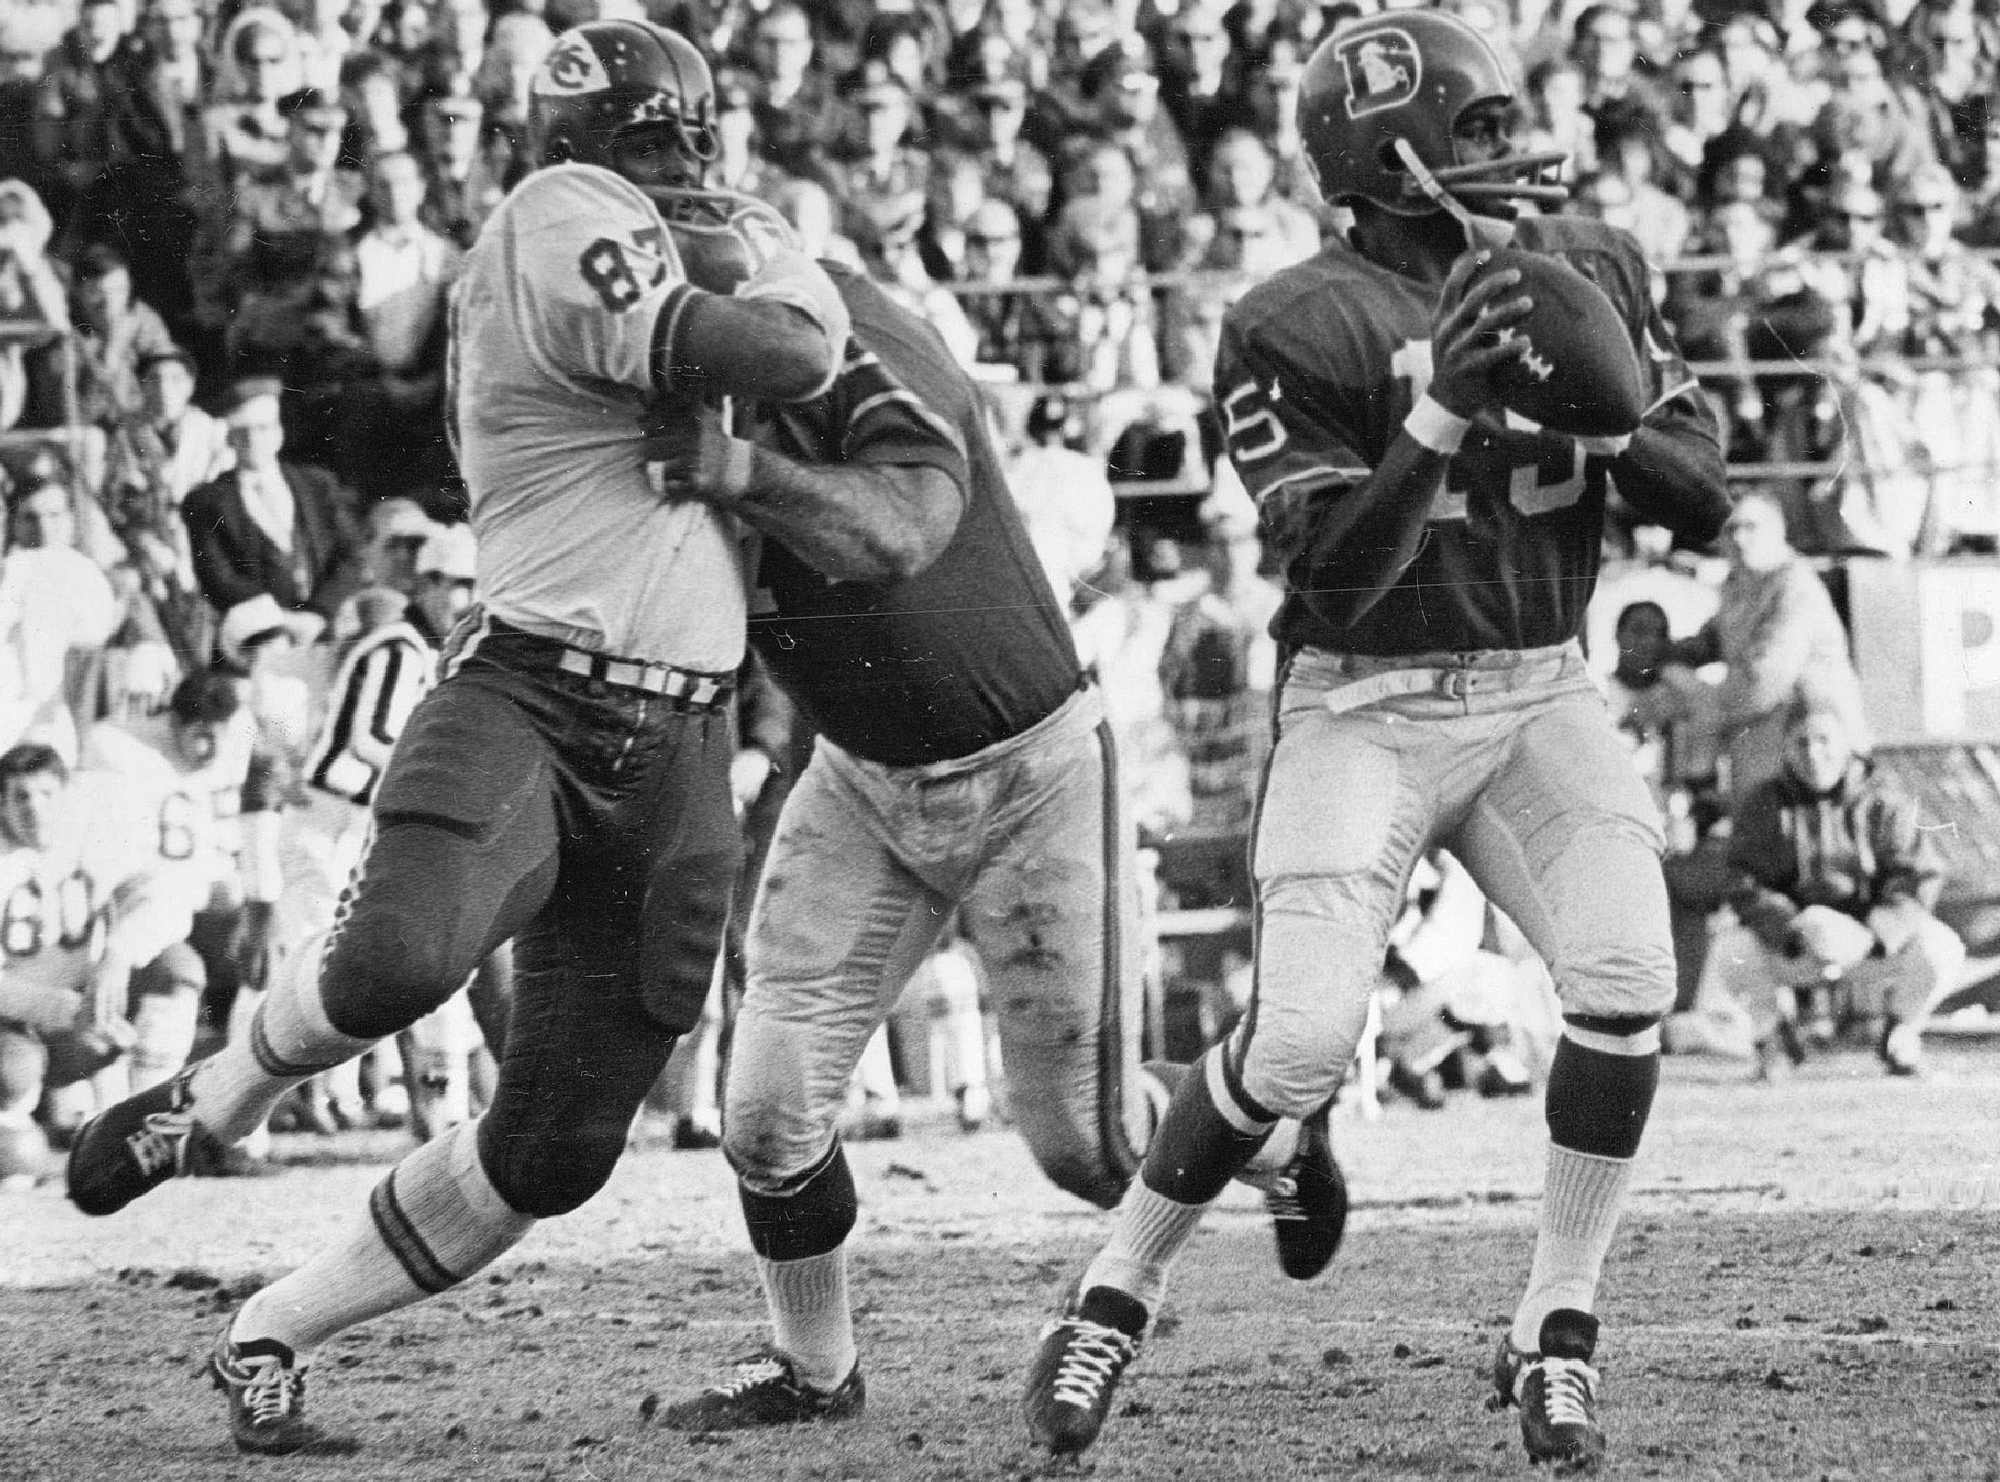 Denver quarterback Marlin Briscoe is unaware that a battle is occurring behind him in the first quarter Saturday. Denver's Sam Brunelli is shown holding Kansas City's Aaron Brown while Briscoe prepares to let loose with a pass..